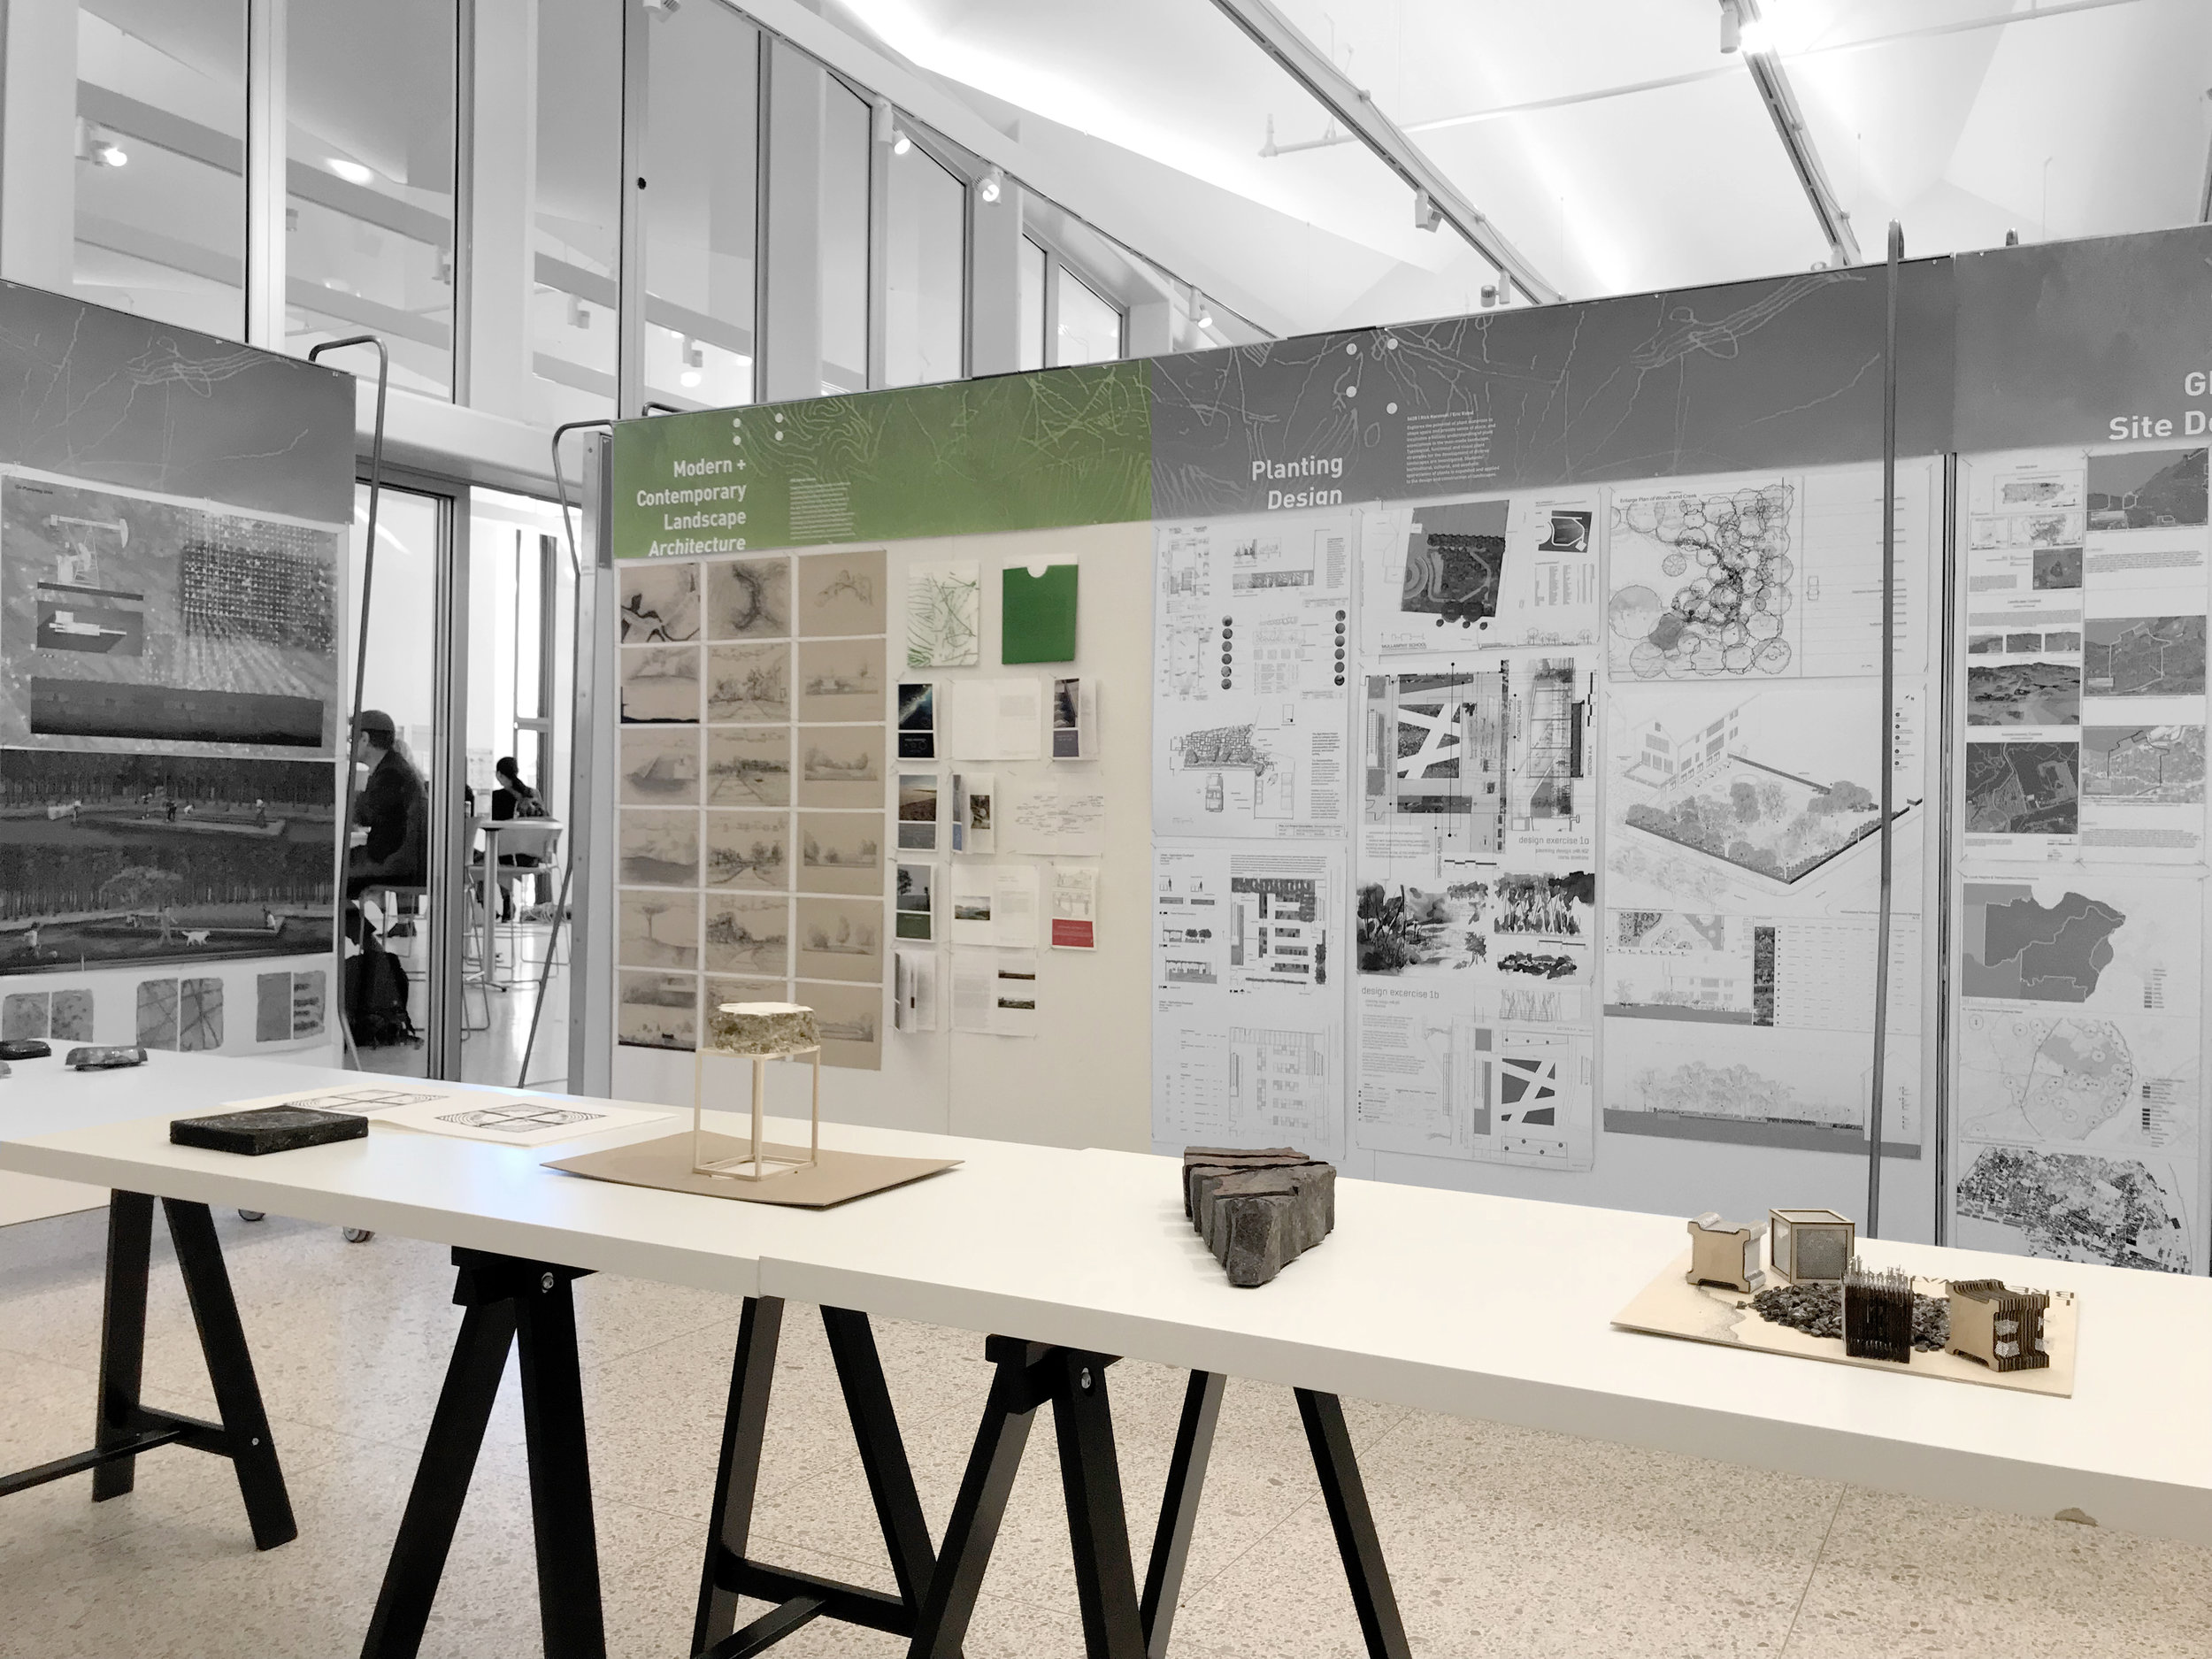 An exhibition for the Landscape Architecture Accreditation Board visit (2019). My student work in color.